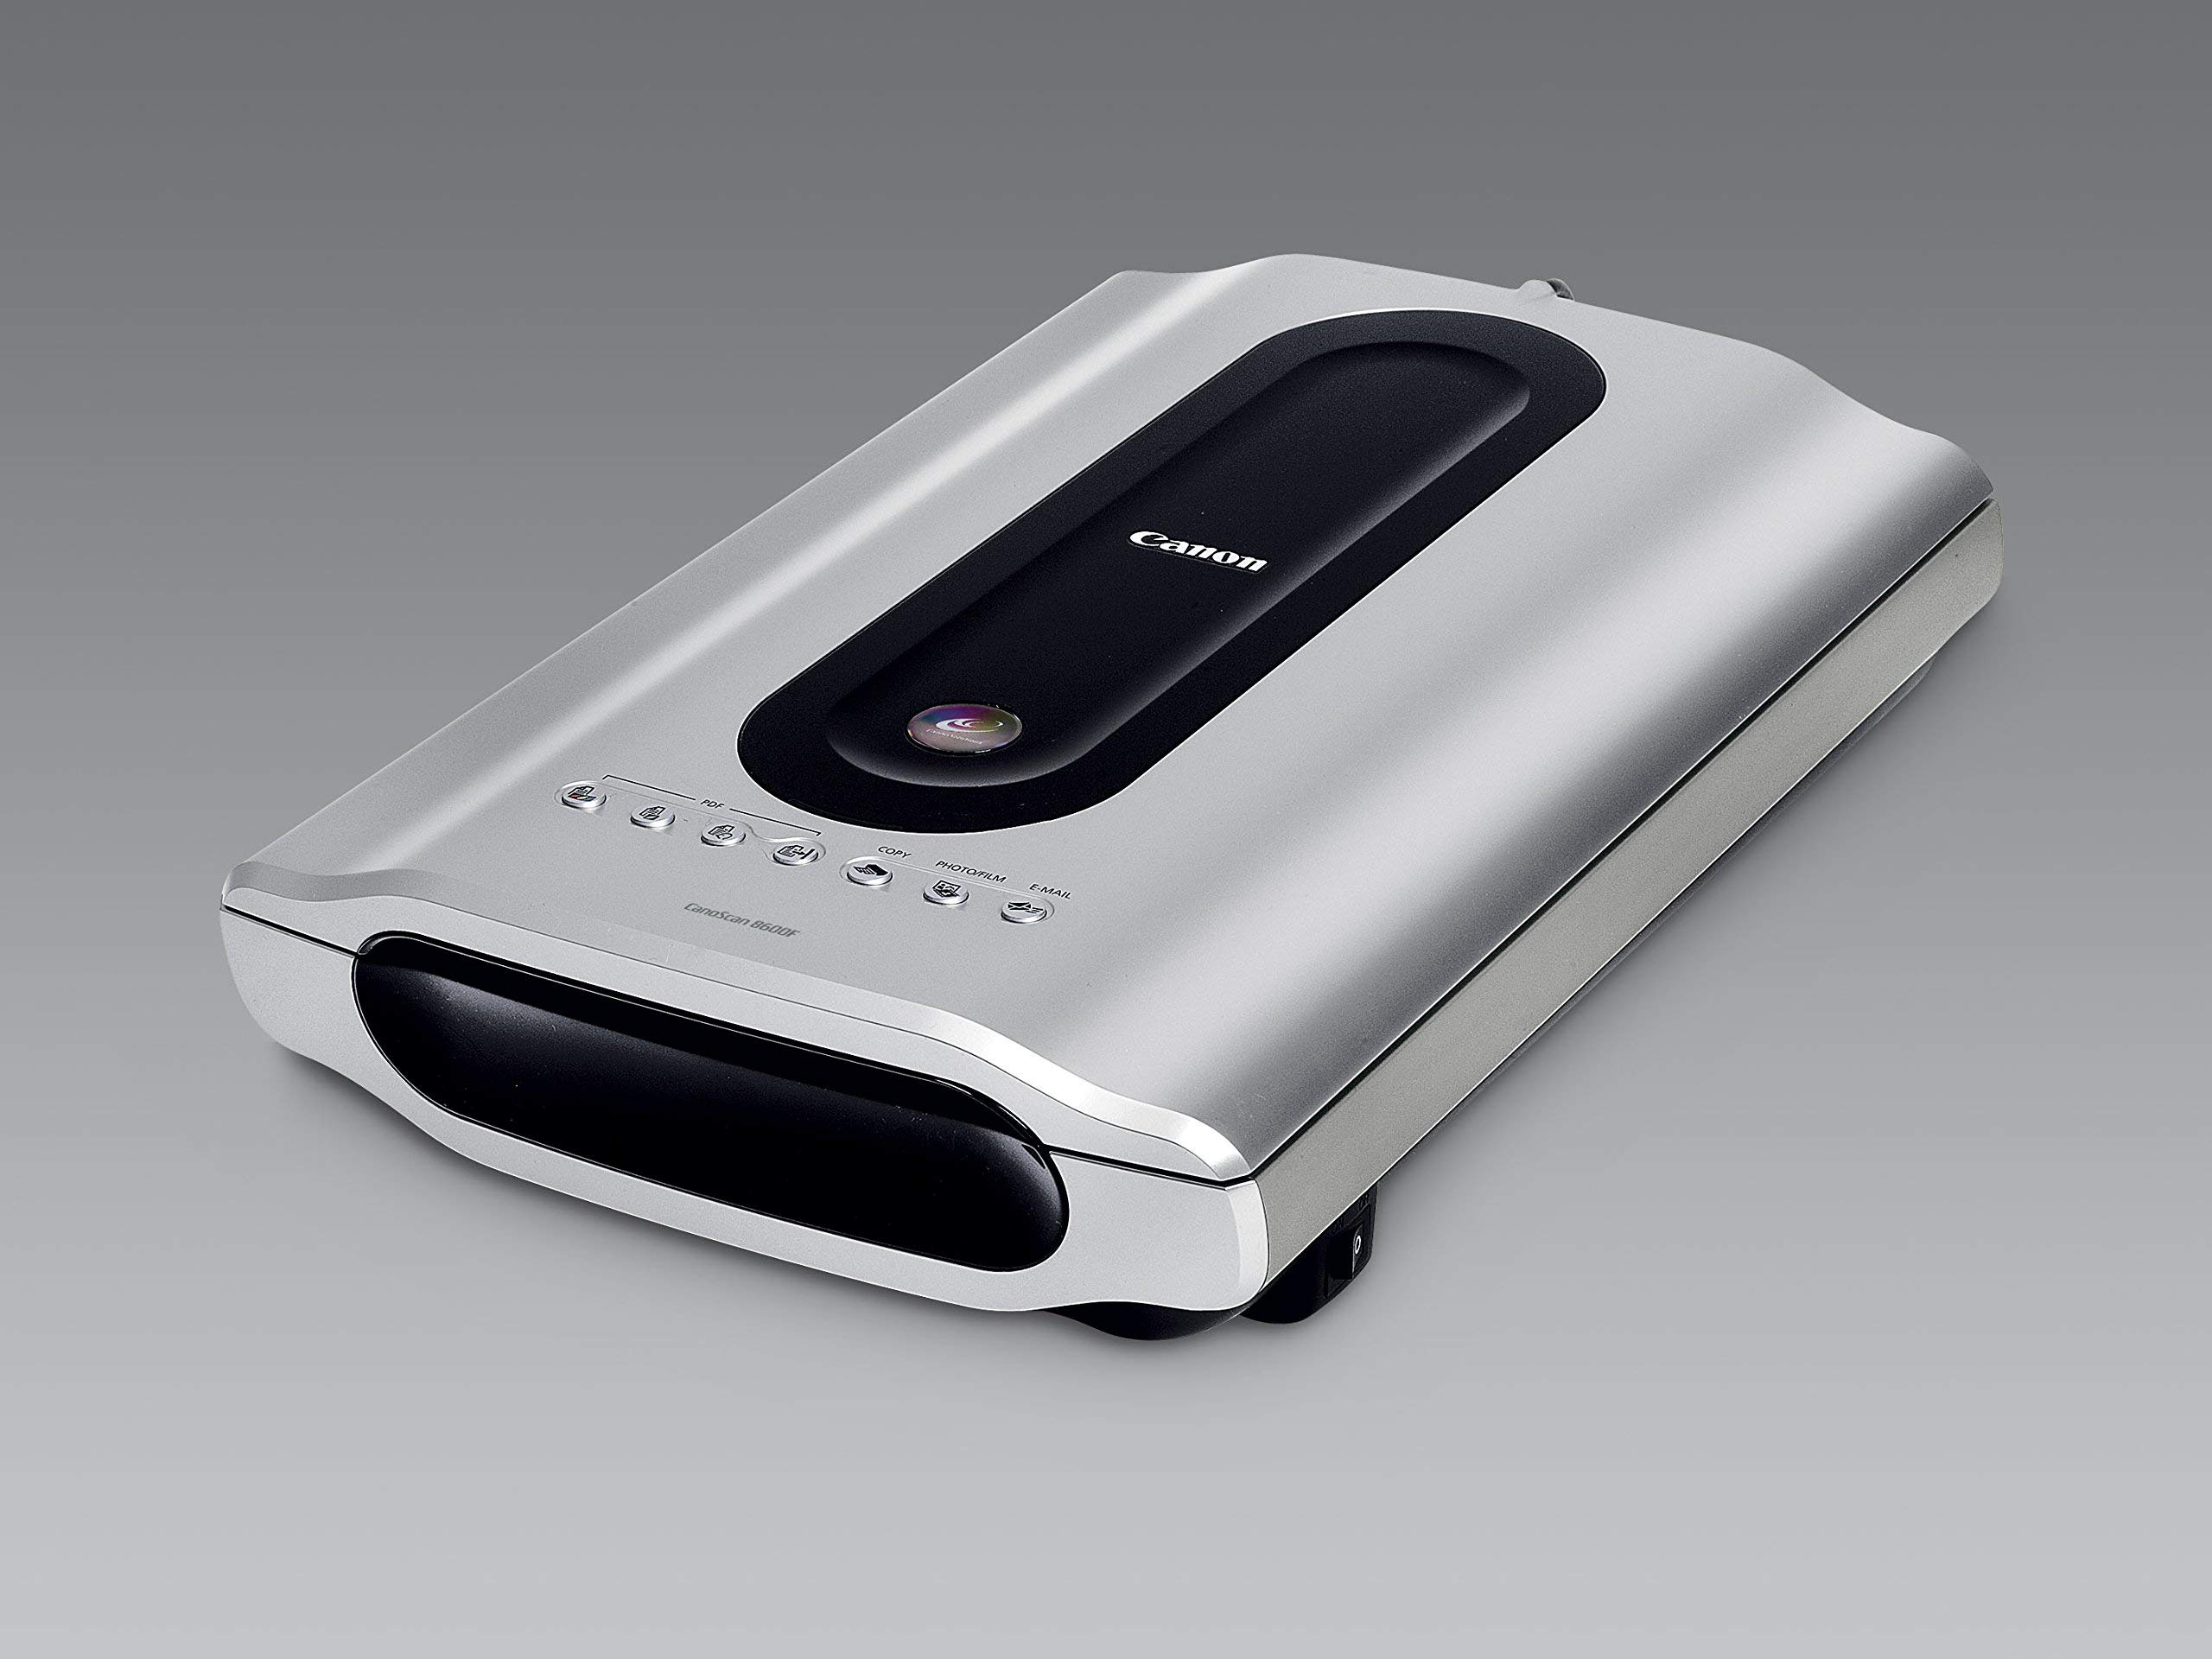 CanoScan 8600F (Renewed) by Canon